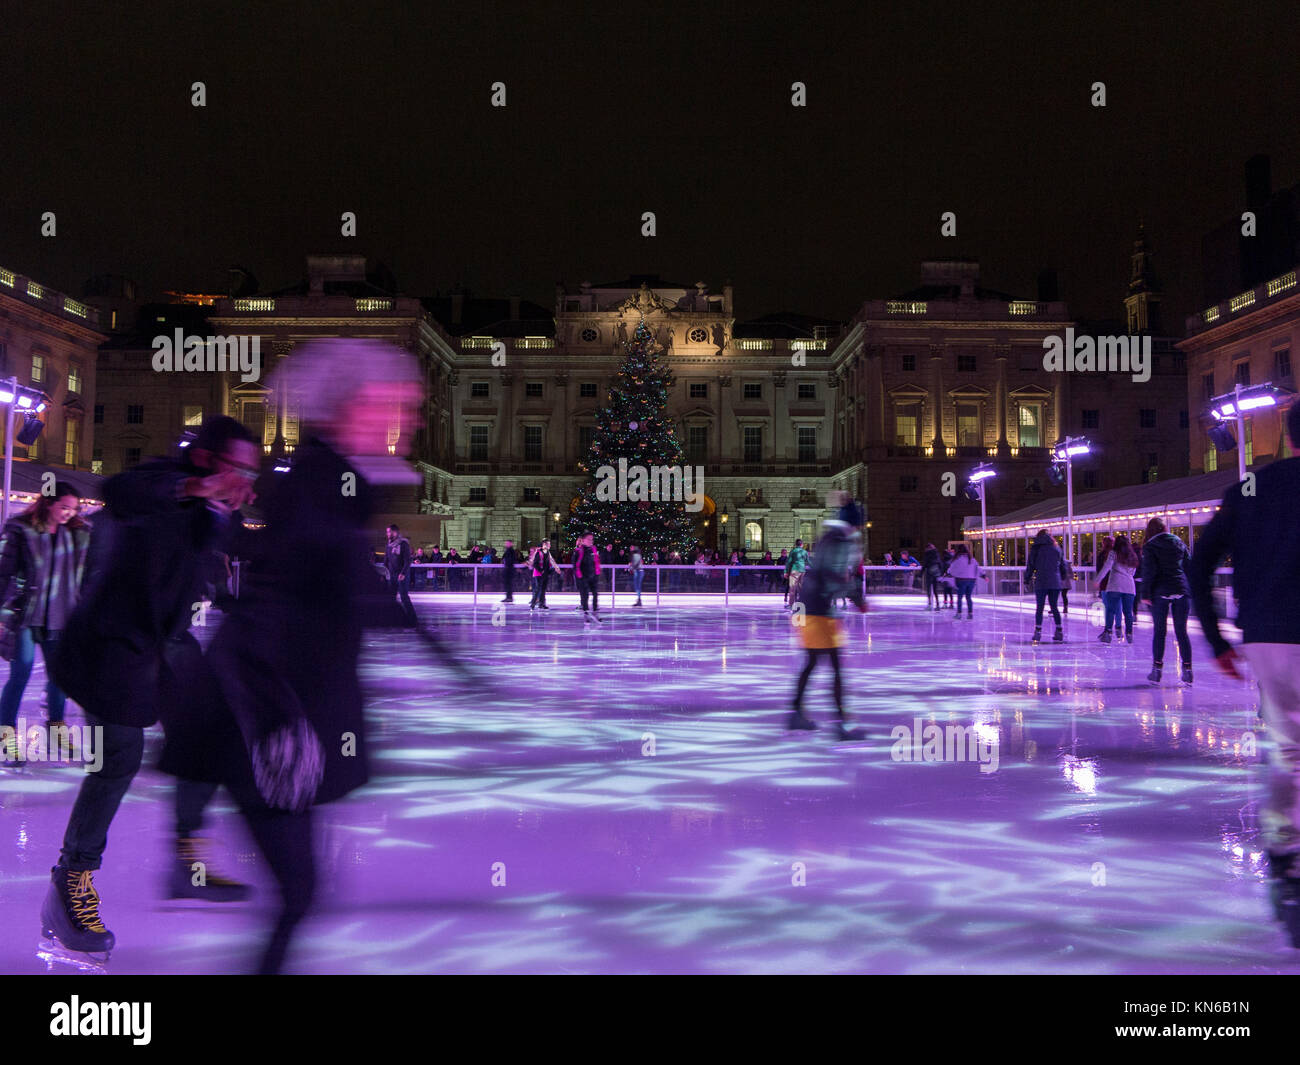 Skaters enjoying the ice rink at Christmas time at Somerset House - Stock Image